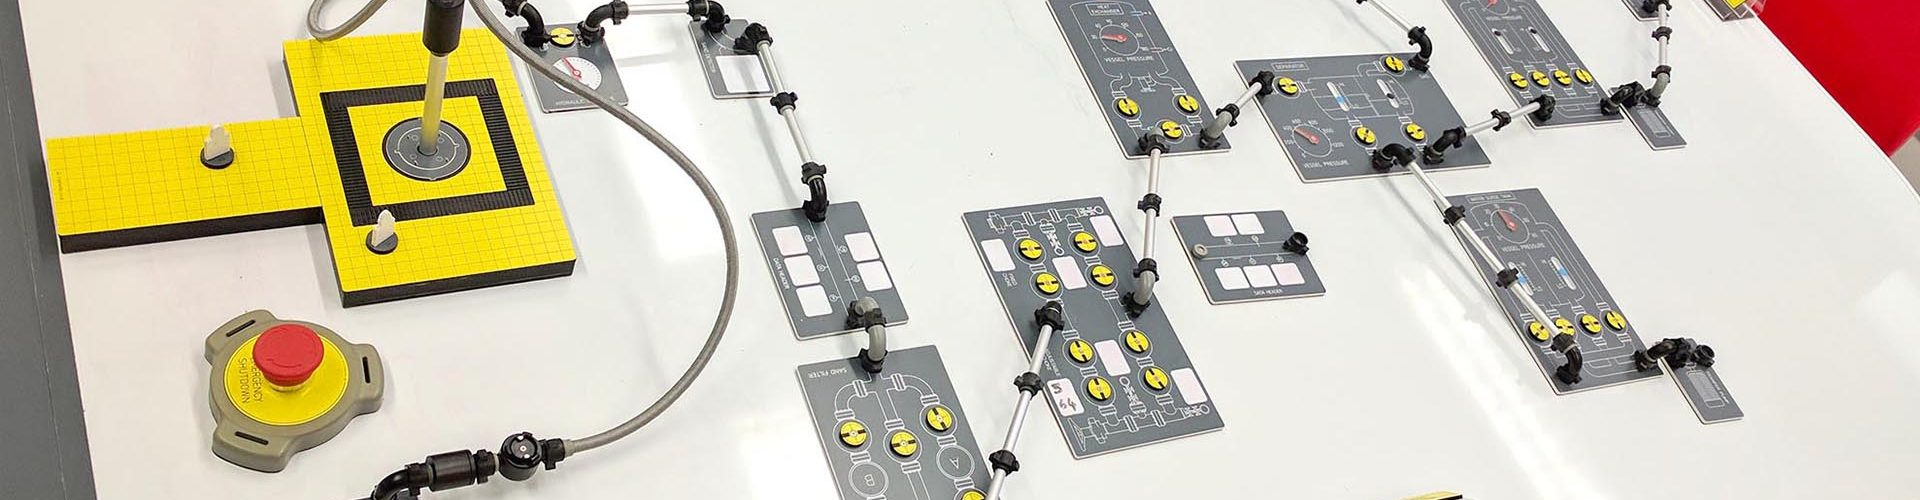 Tabletop Simulation Systems